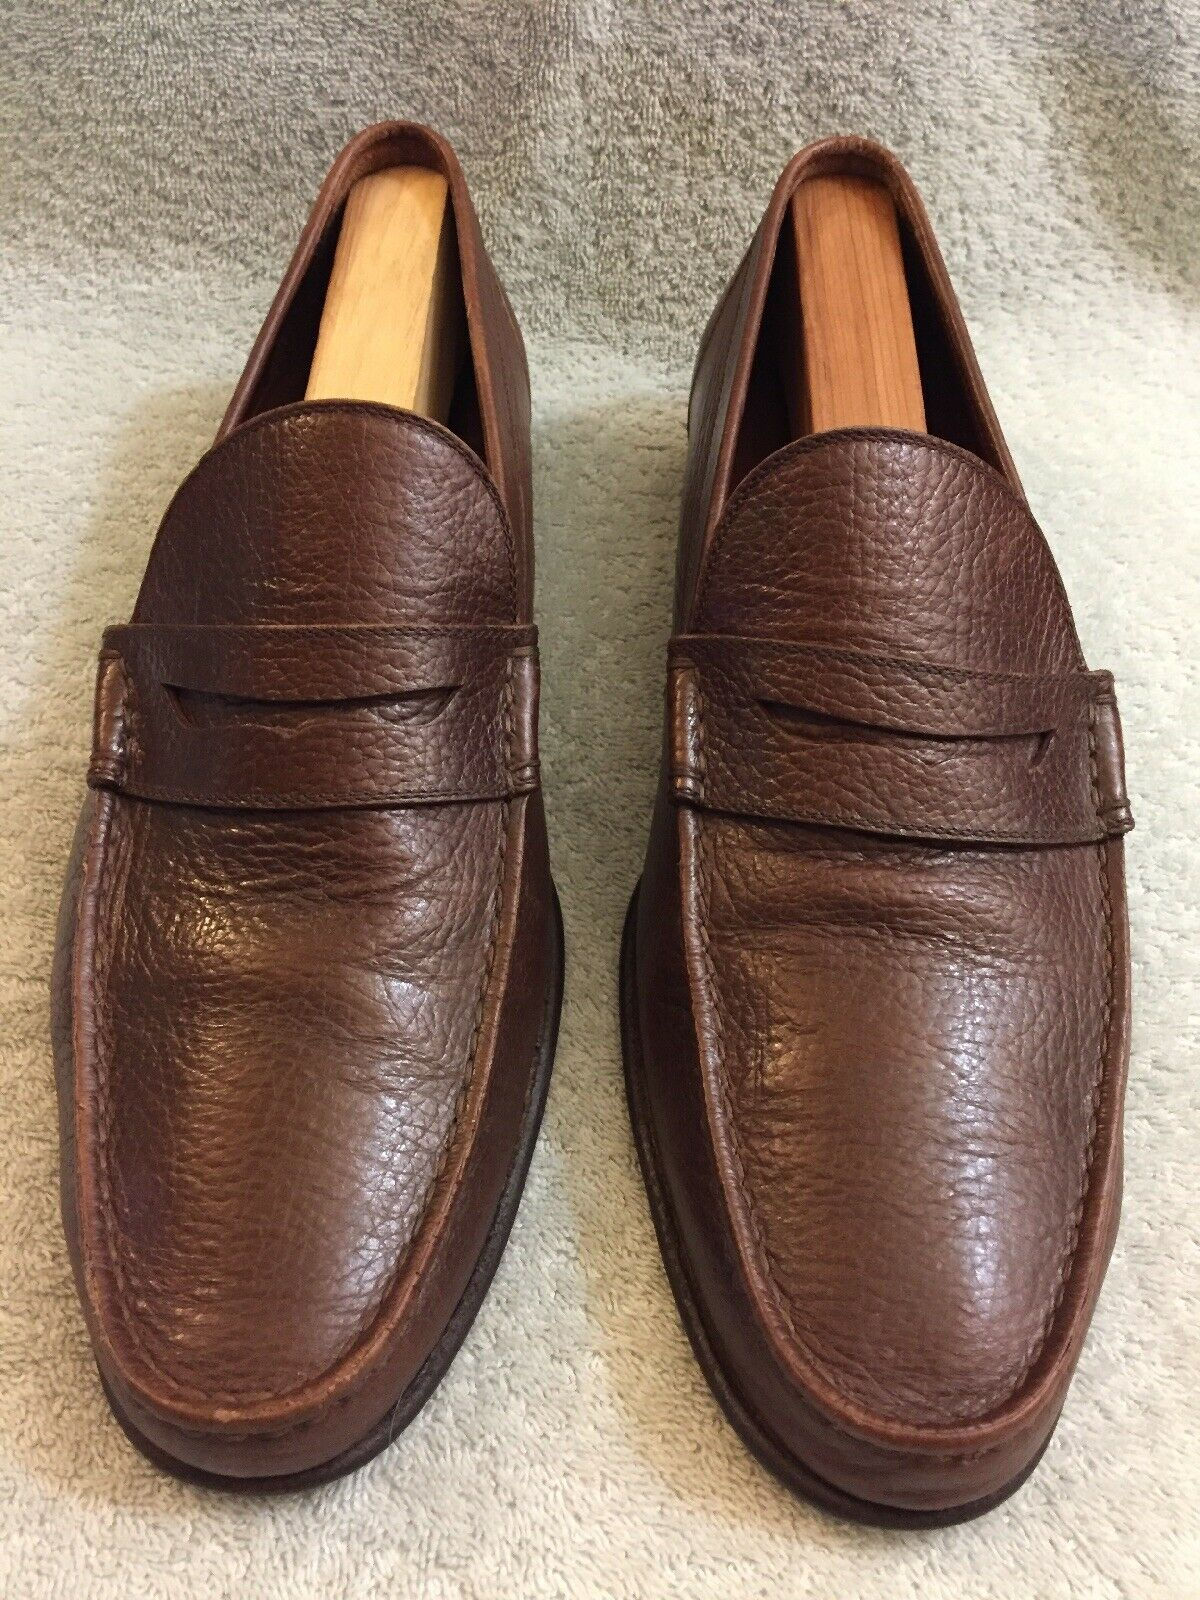 A.testoni Bologna Italia Marronee Loafers Made In  60039 Dimensione 9.5 M